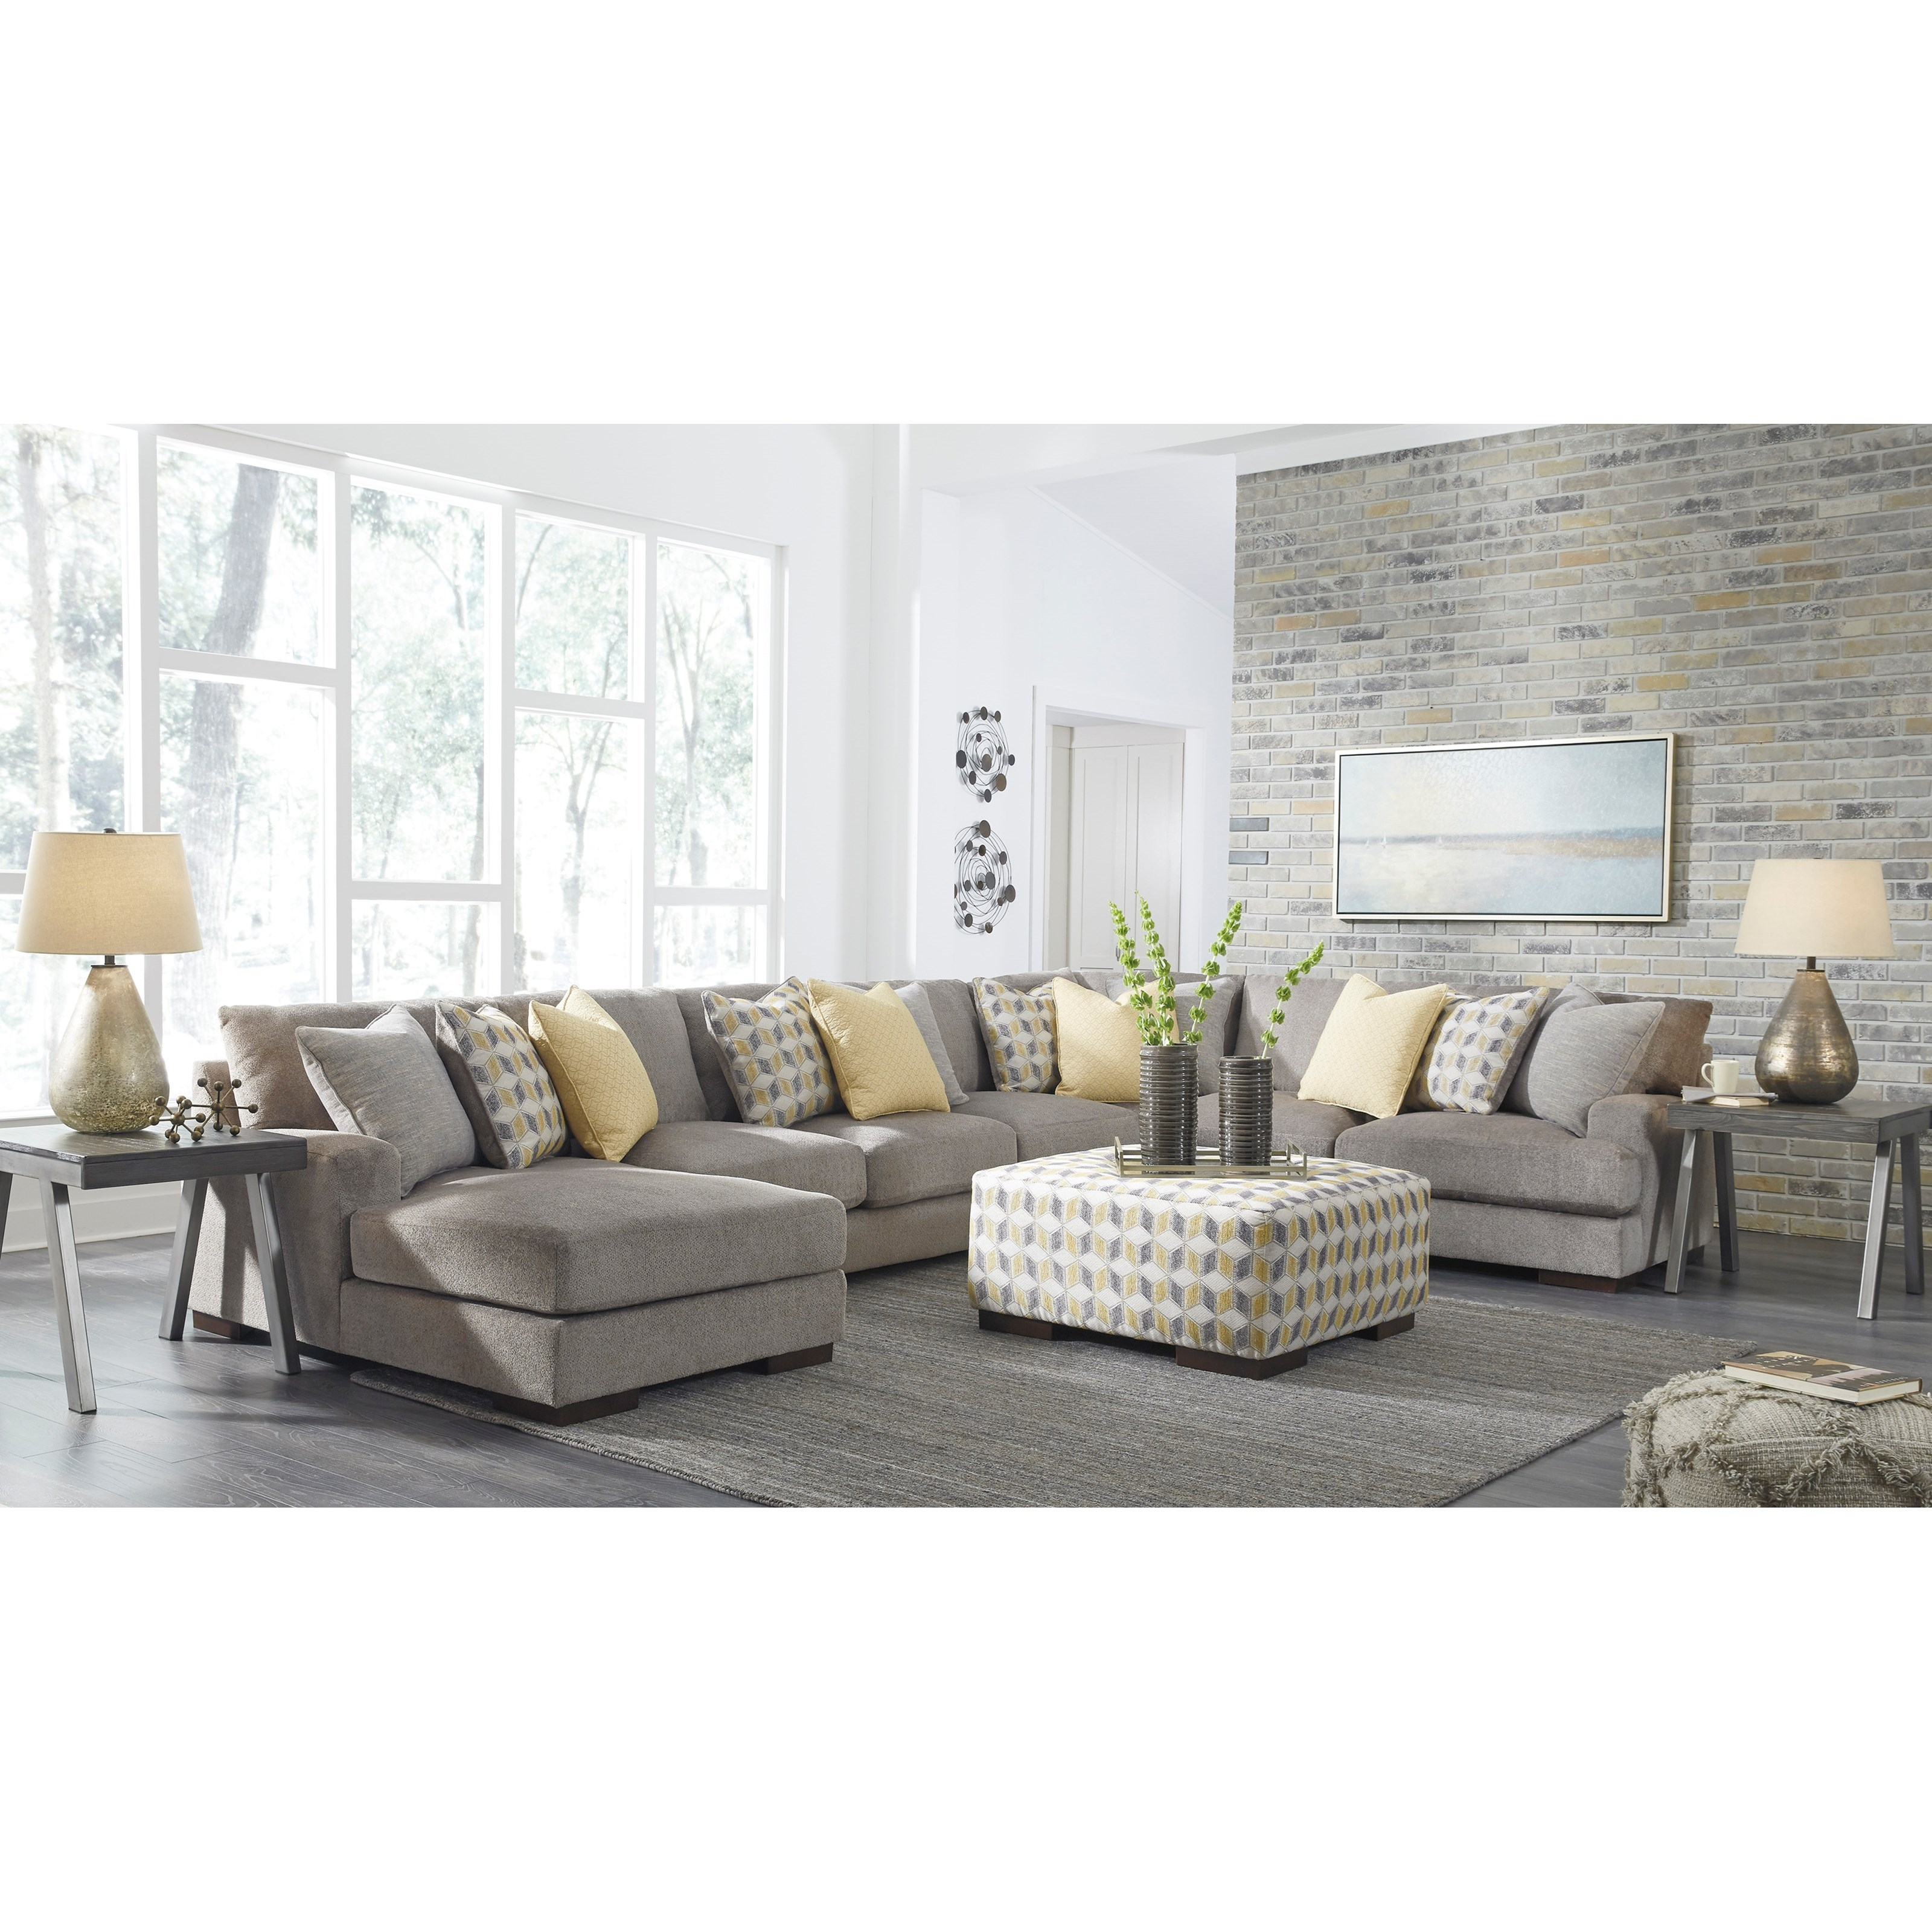 Benchcraft fallsworth living room group value city for Living room furniture groups